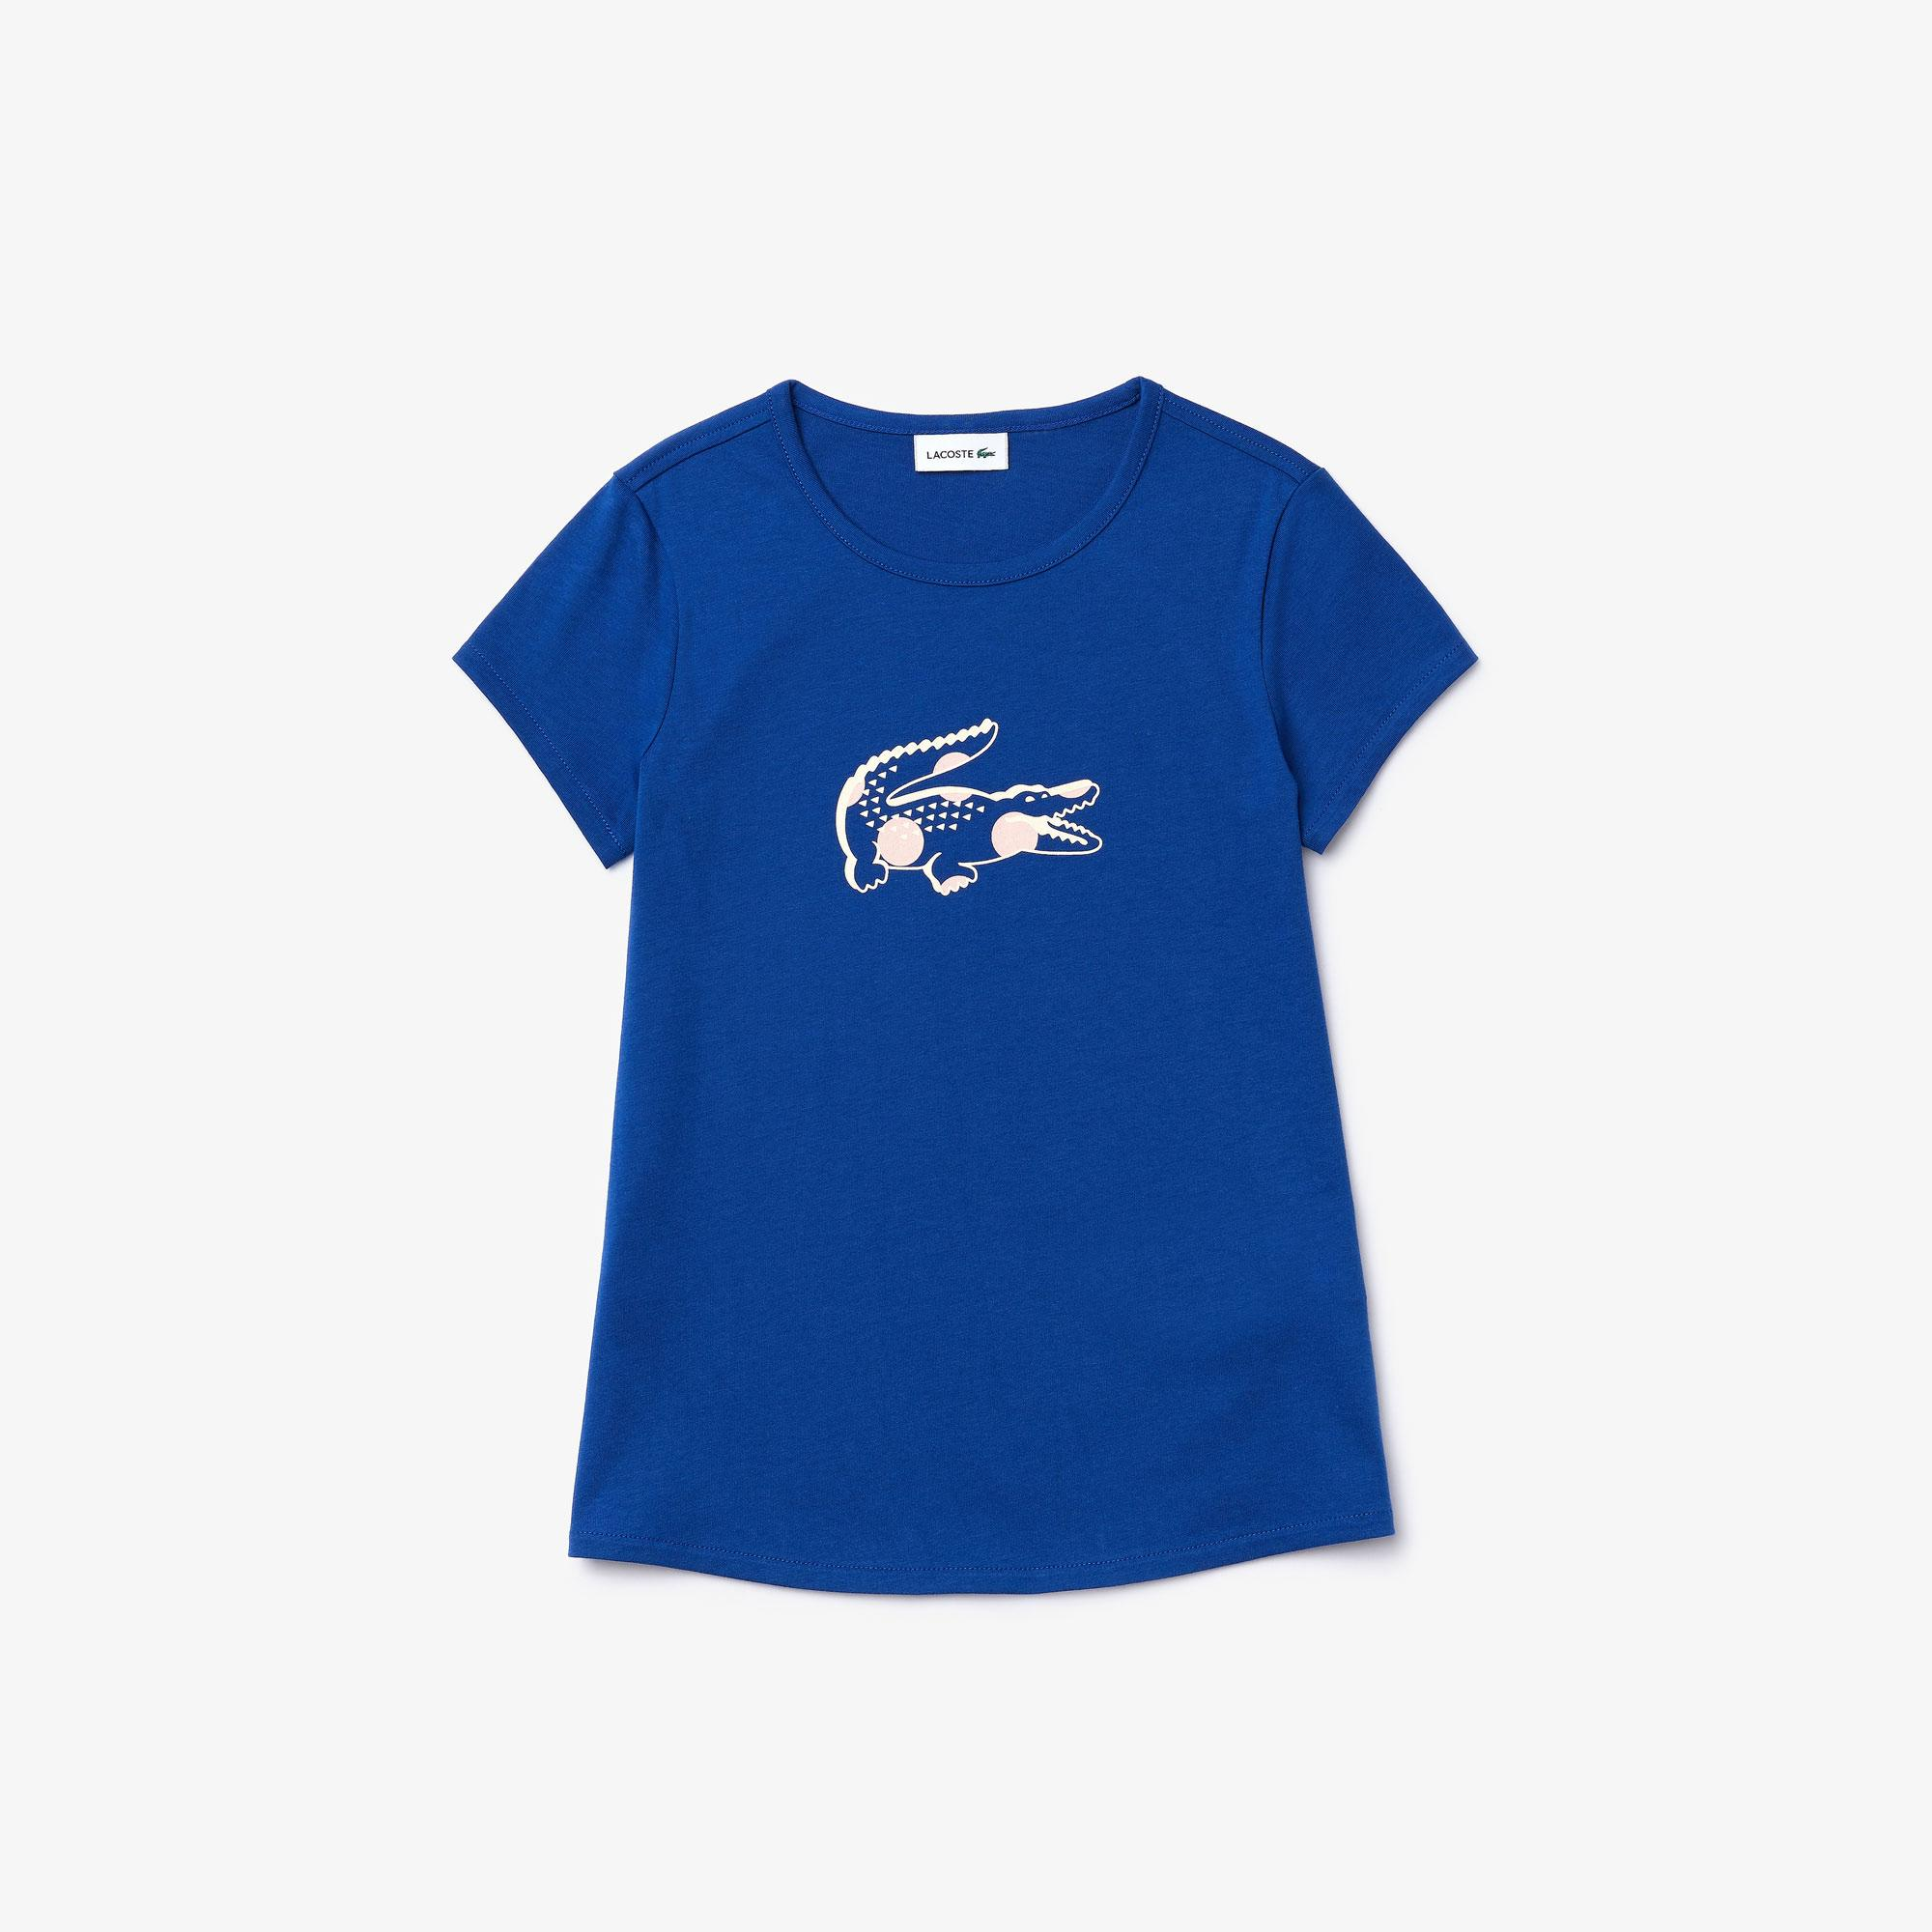 Lacoste Girl's Printed Cotton Crew Neck T-Shirt